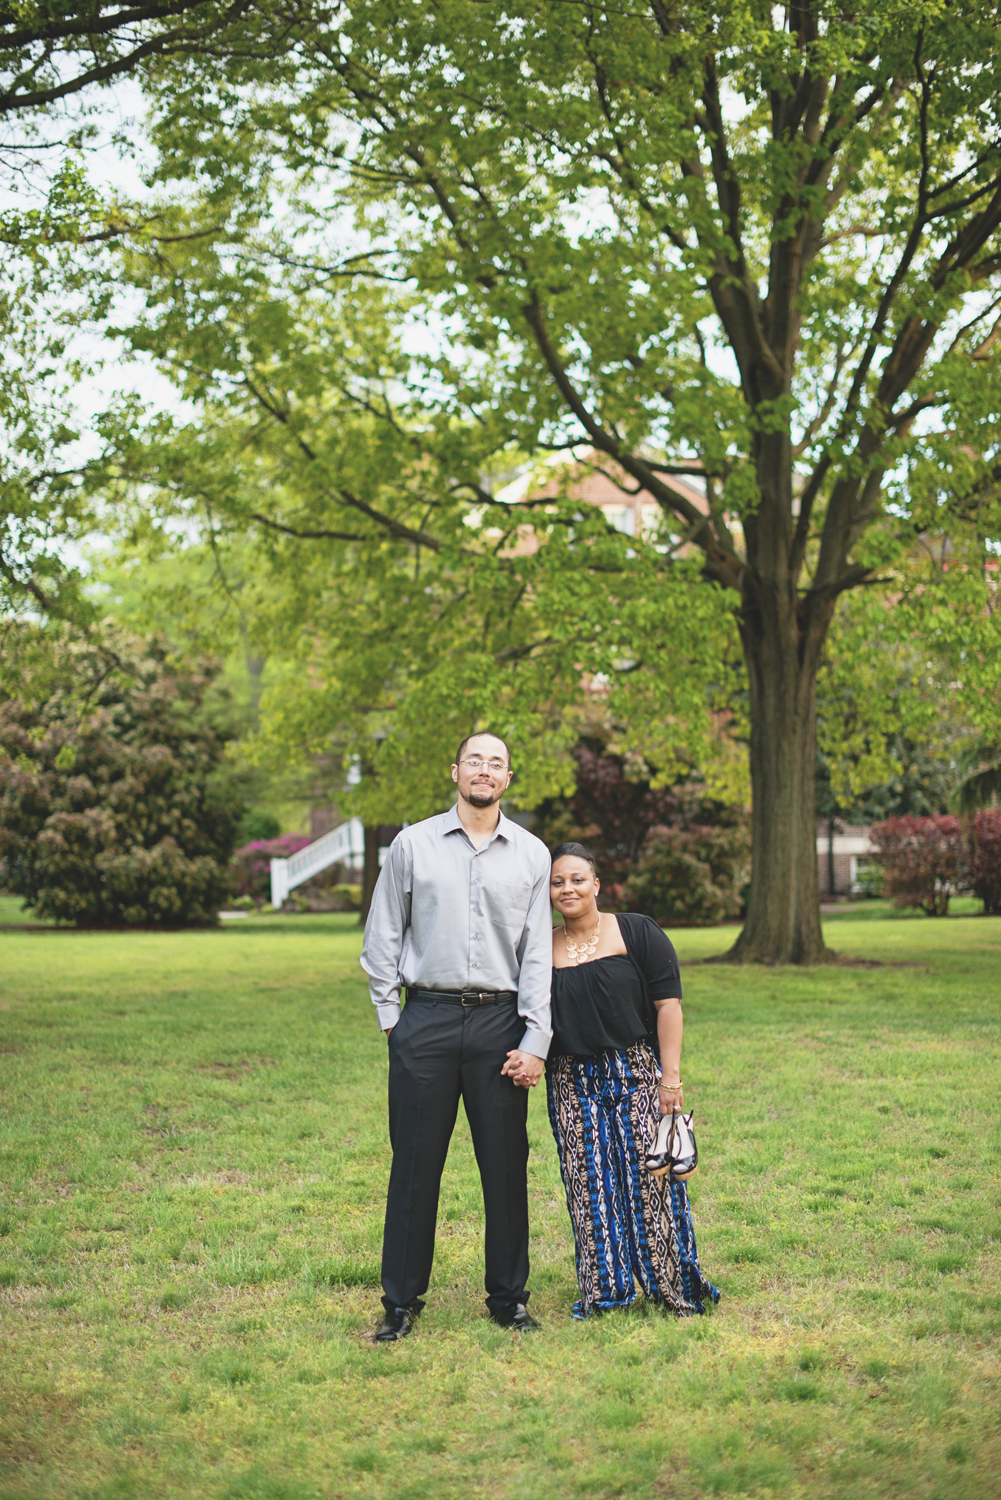 Spring engagement photo inspiration in Virginia